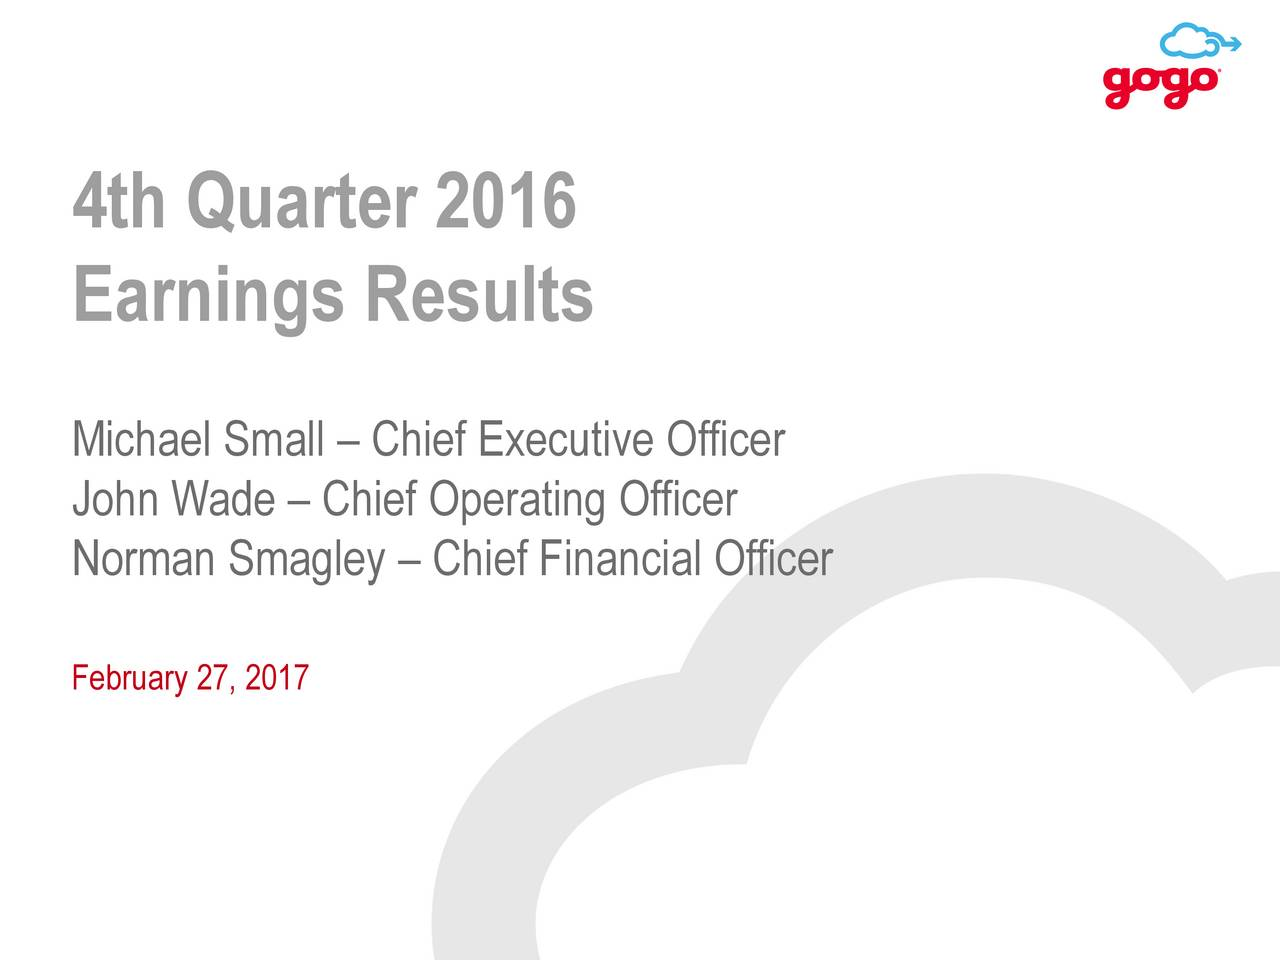 Earnings Results Michael Small  Chief Executive Officer John Wade  Chief Operating Officer Norman Smagley  Chief Financial Officer February 27, 2017